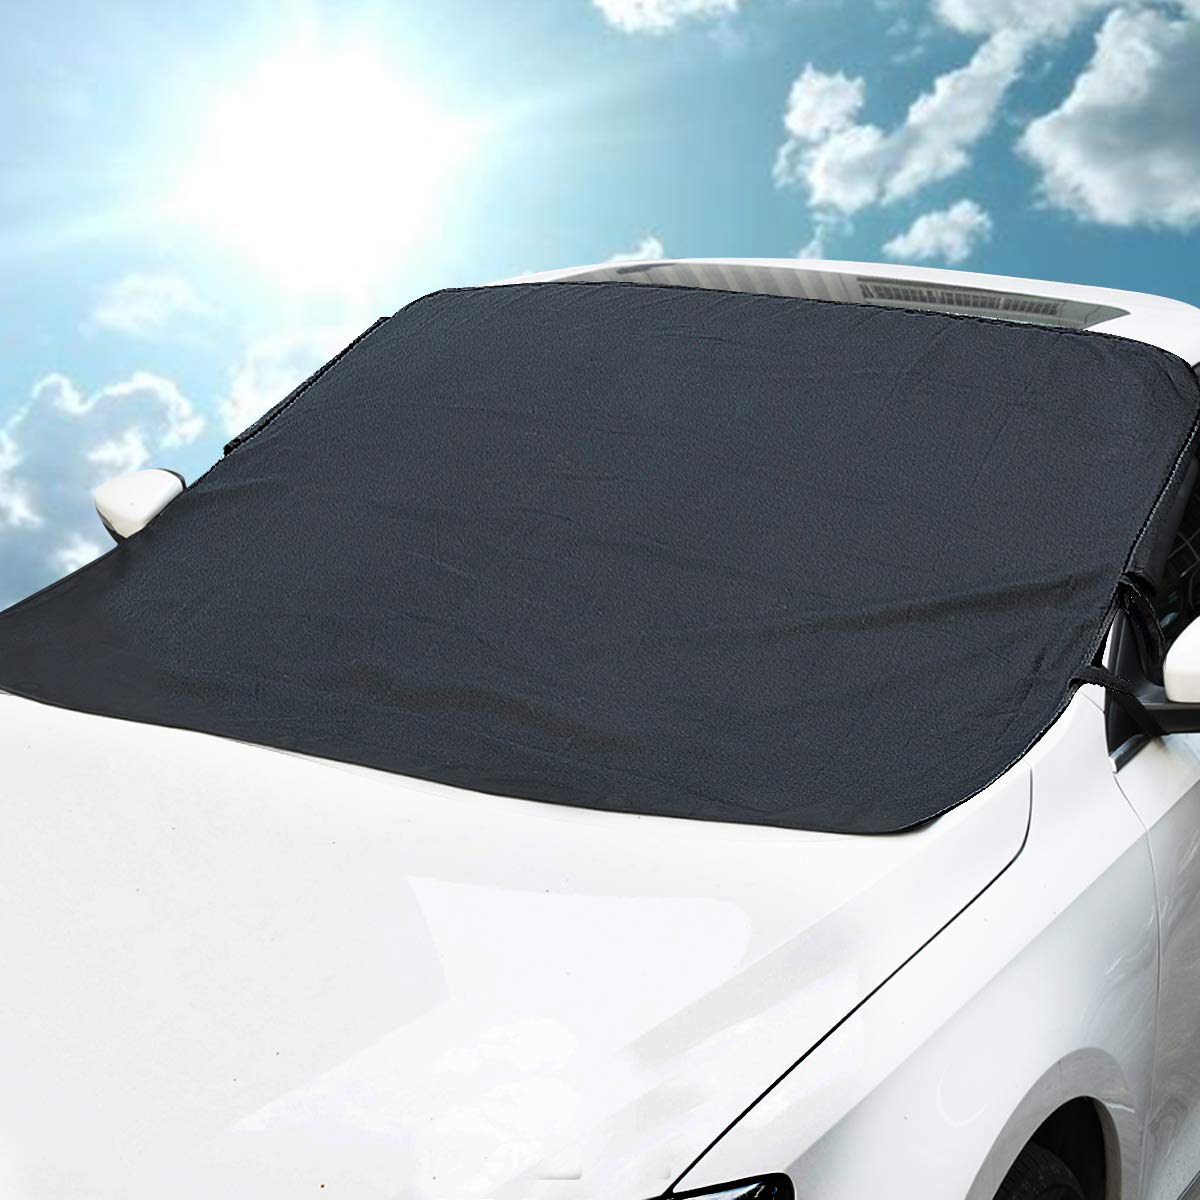 MATCC Windshield Cover Waterproof Sun Shade Protector with Magnets and Lengthened Side Panels Snow Protection Cover Fits All Season and Most Cars